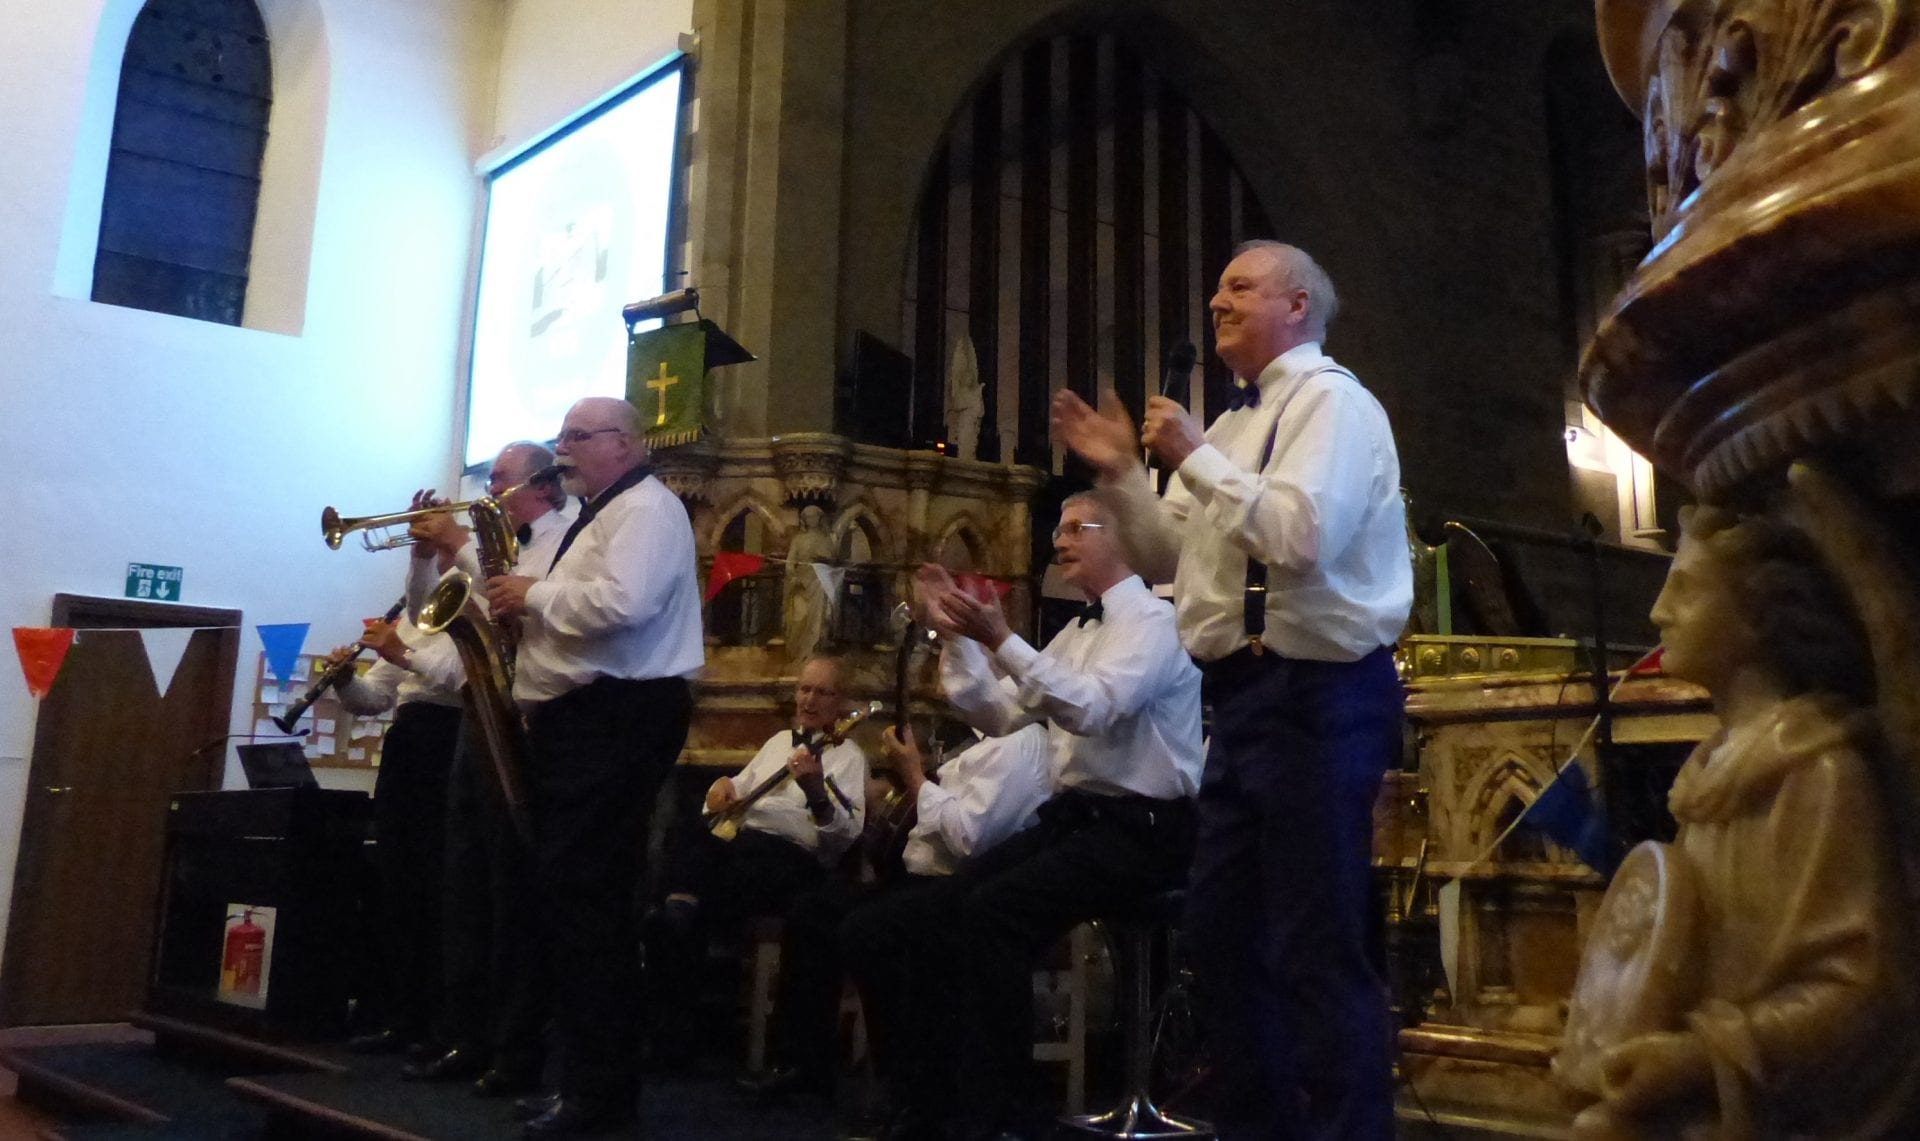 Jimmy Cricket sings with the choir at the birthday celebration for All Saints Church